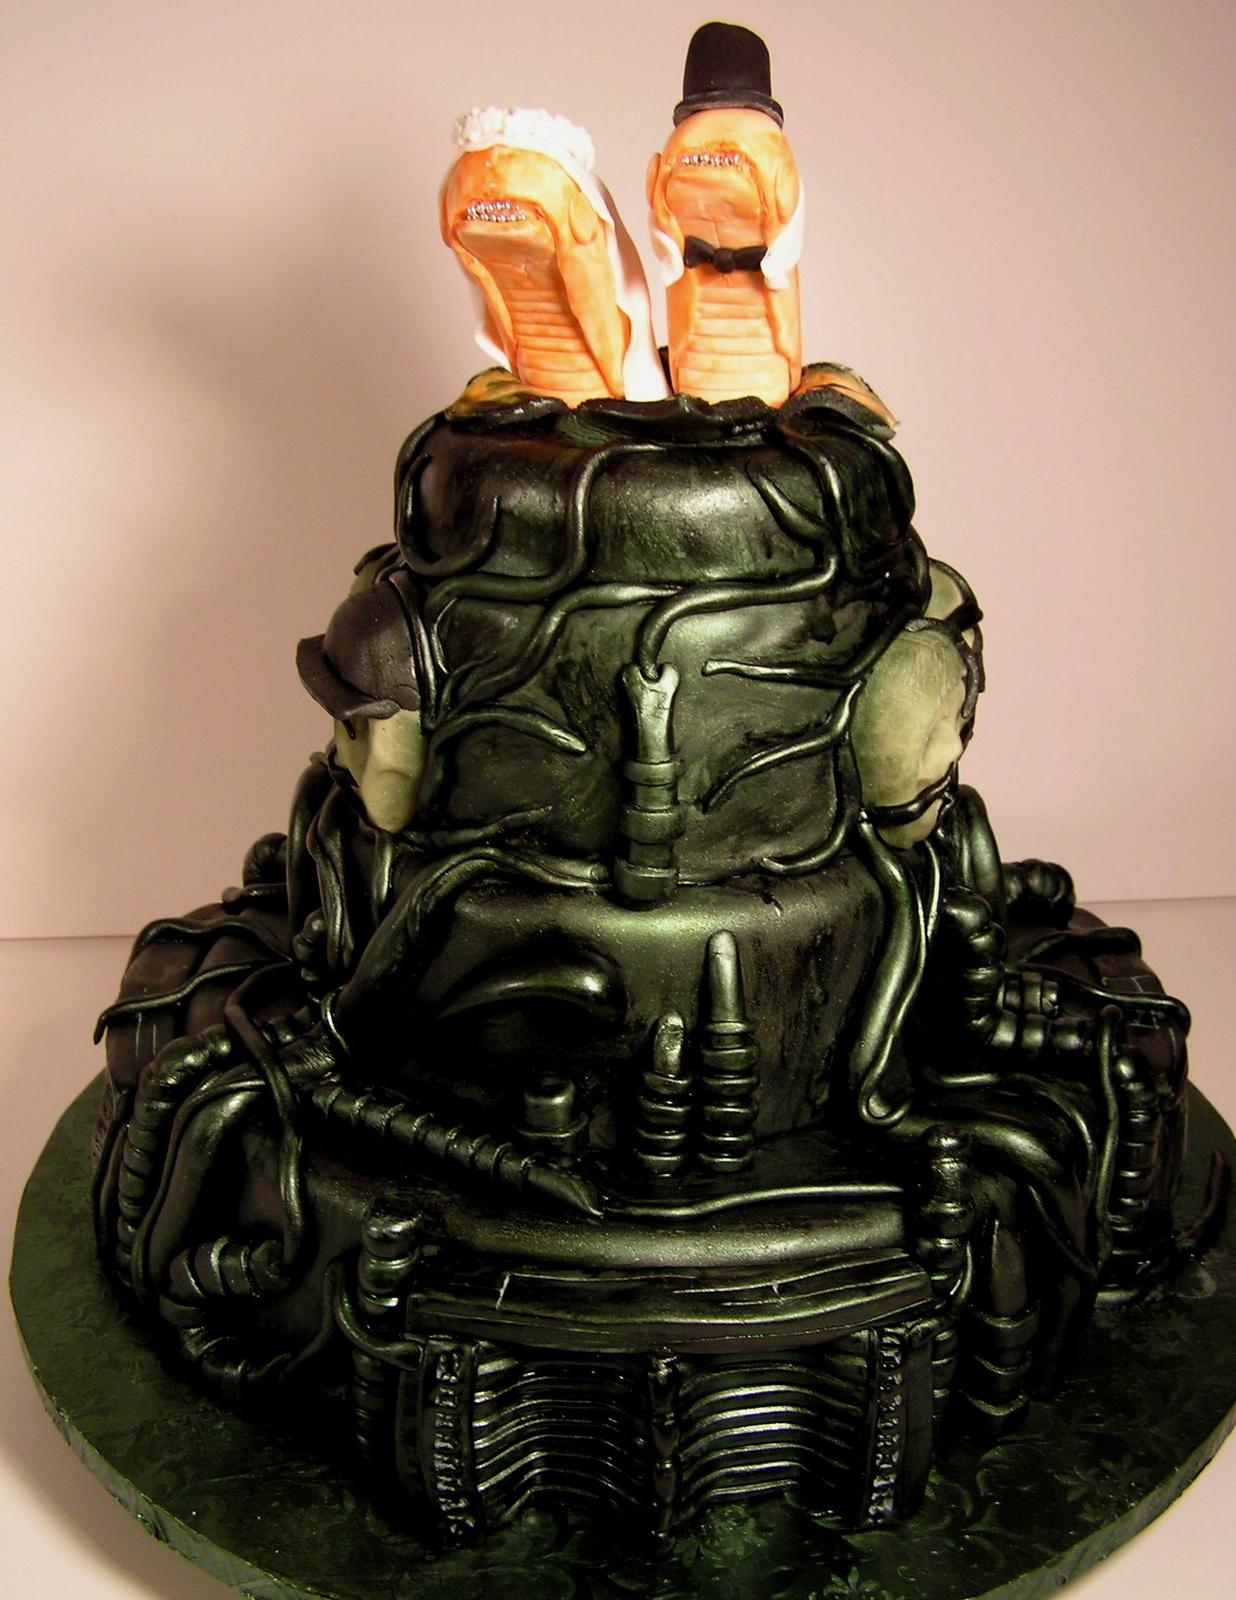 least is the Alien cake.